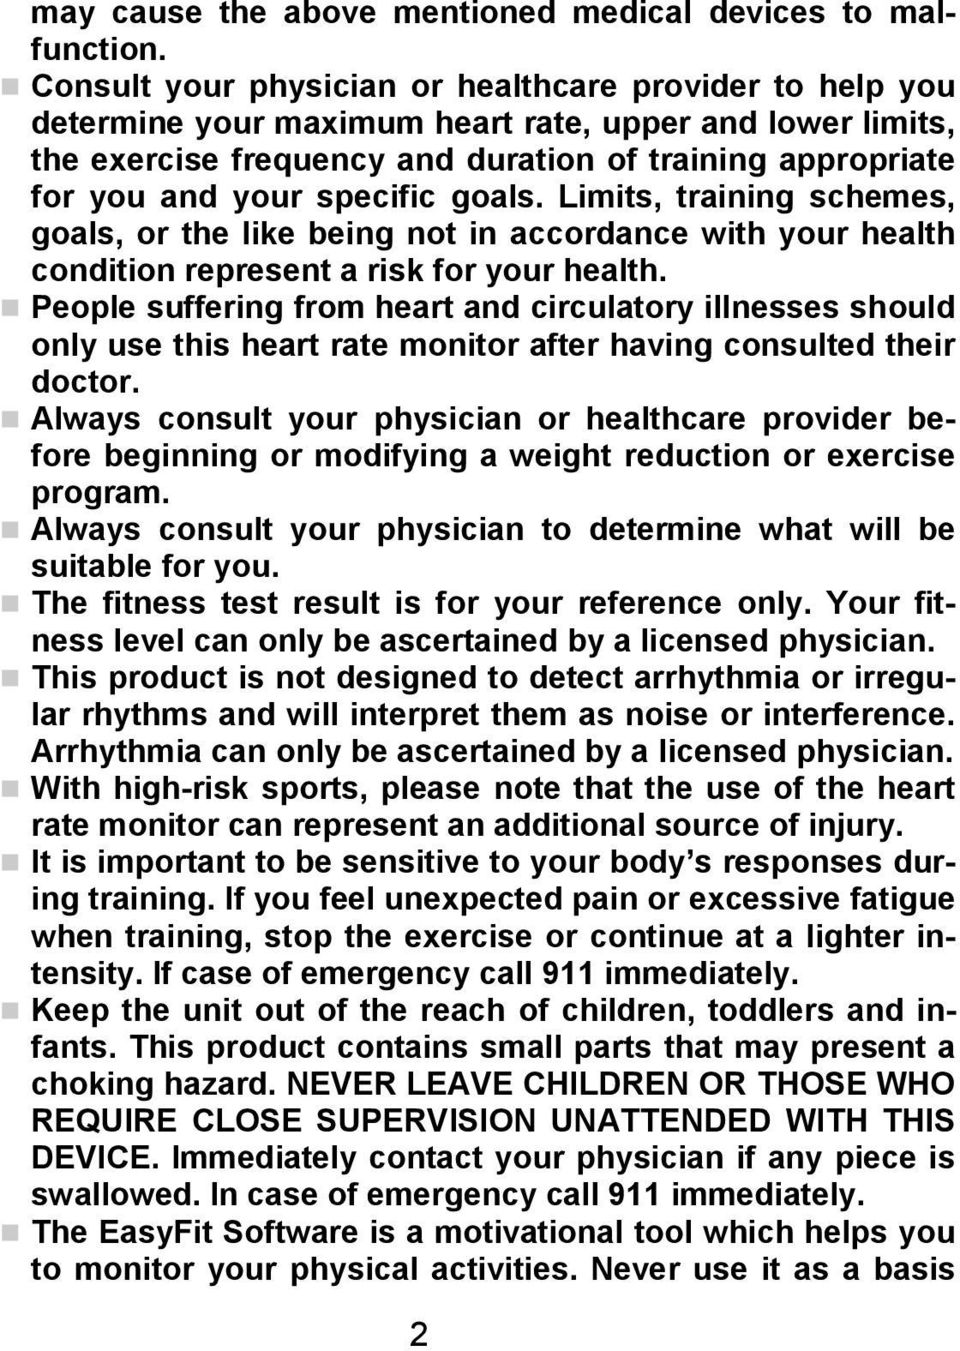 specific goals. Limits, training schemes, goals, or the like being not in accordance with your health condition represent a risk for your health.